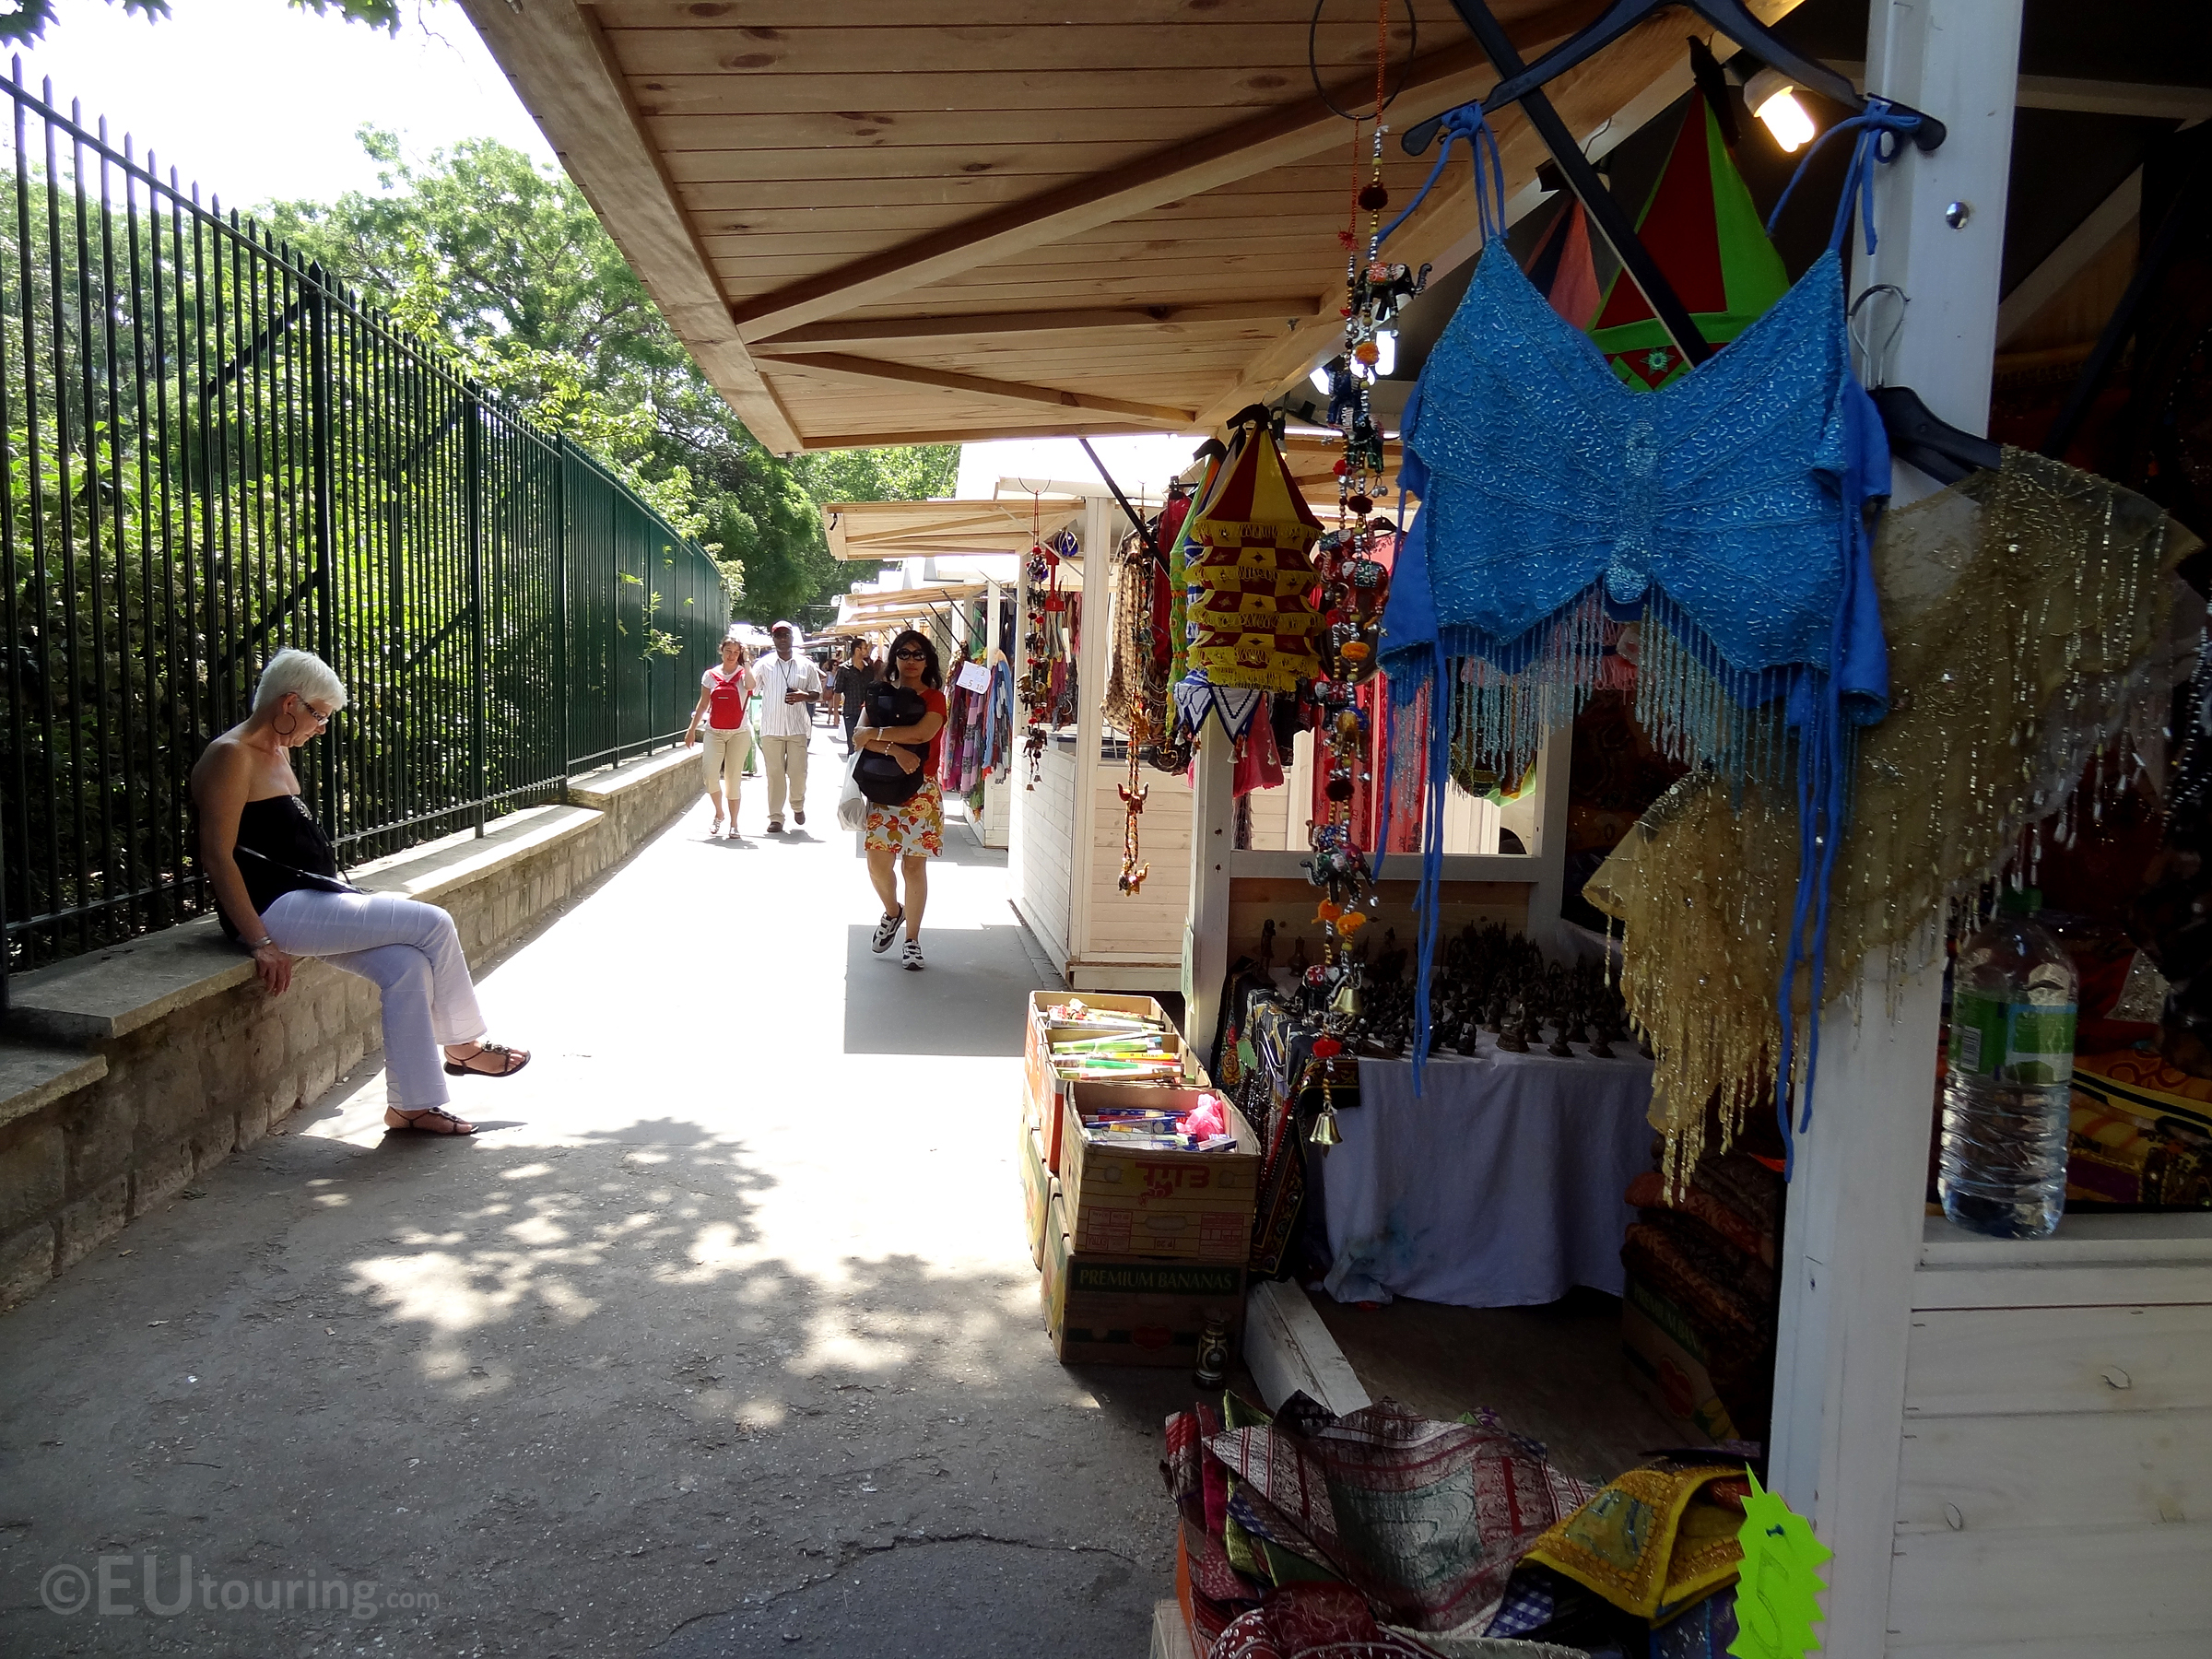 Stalls along the path